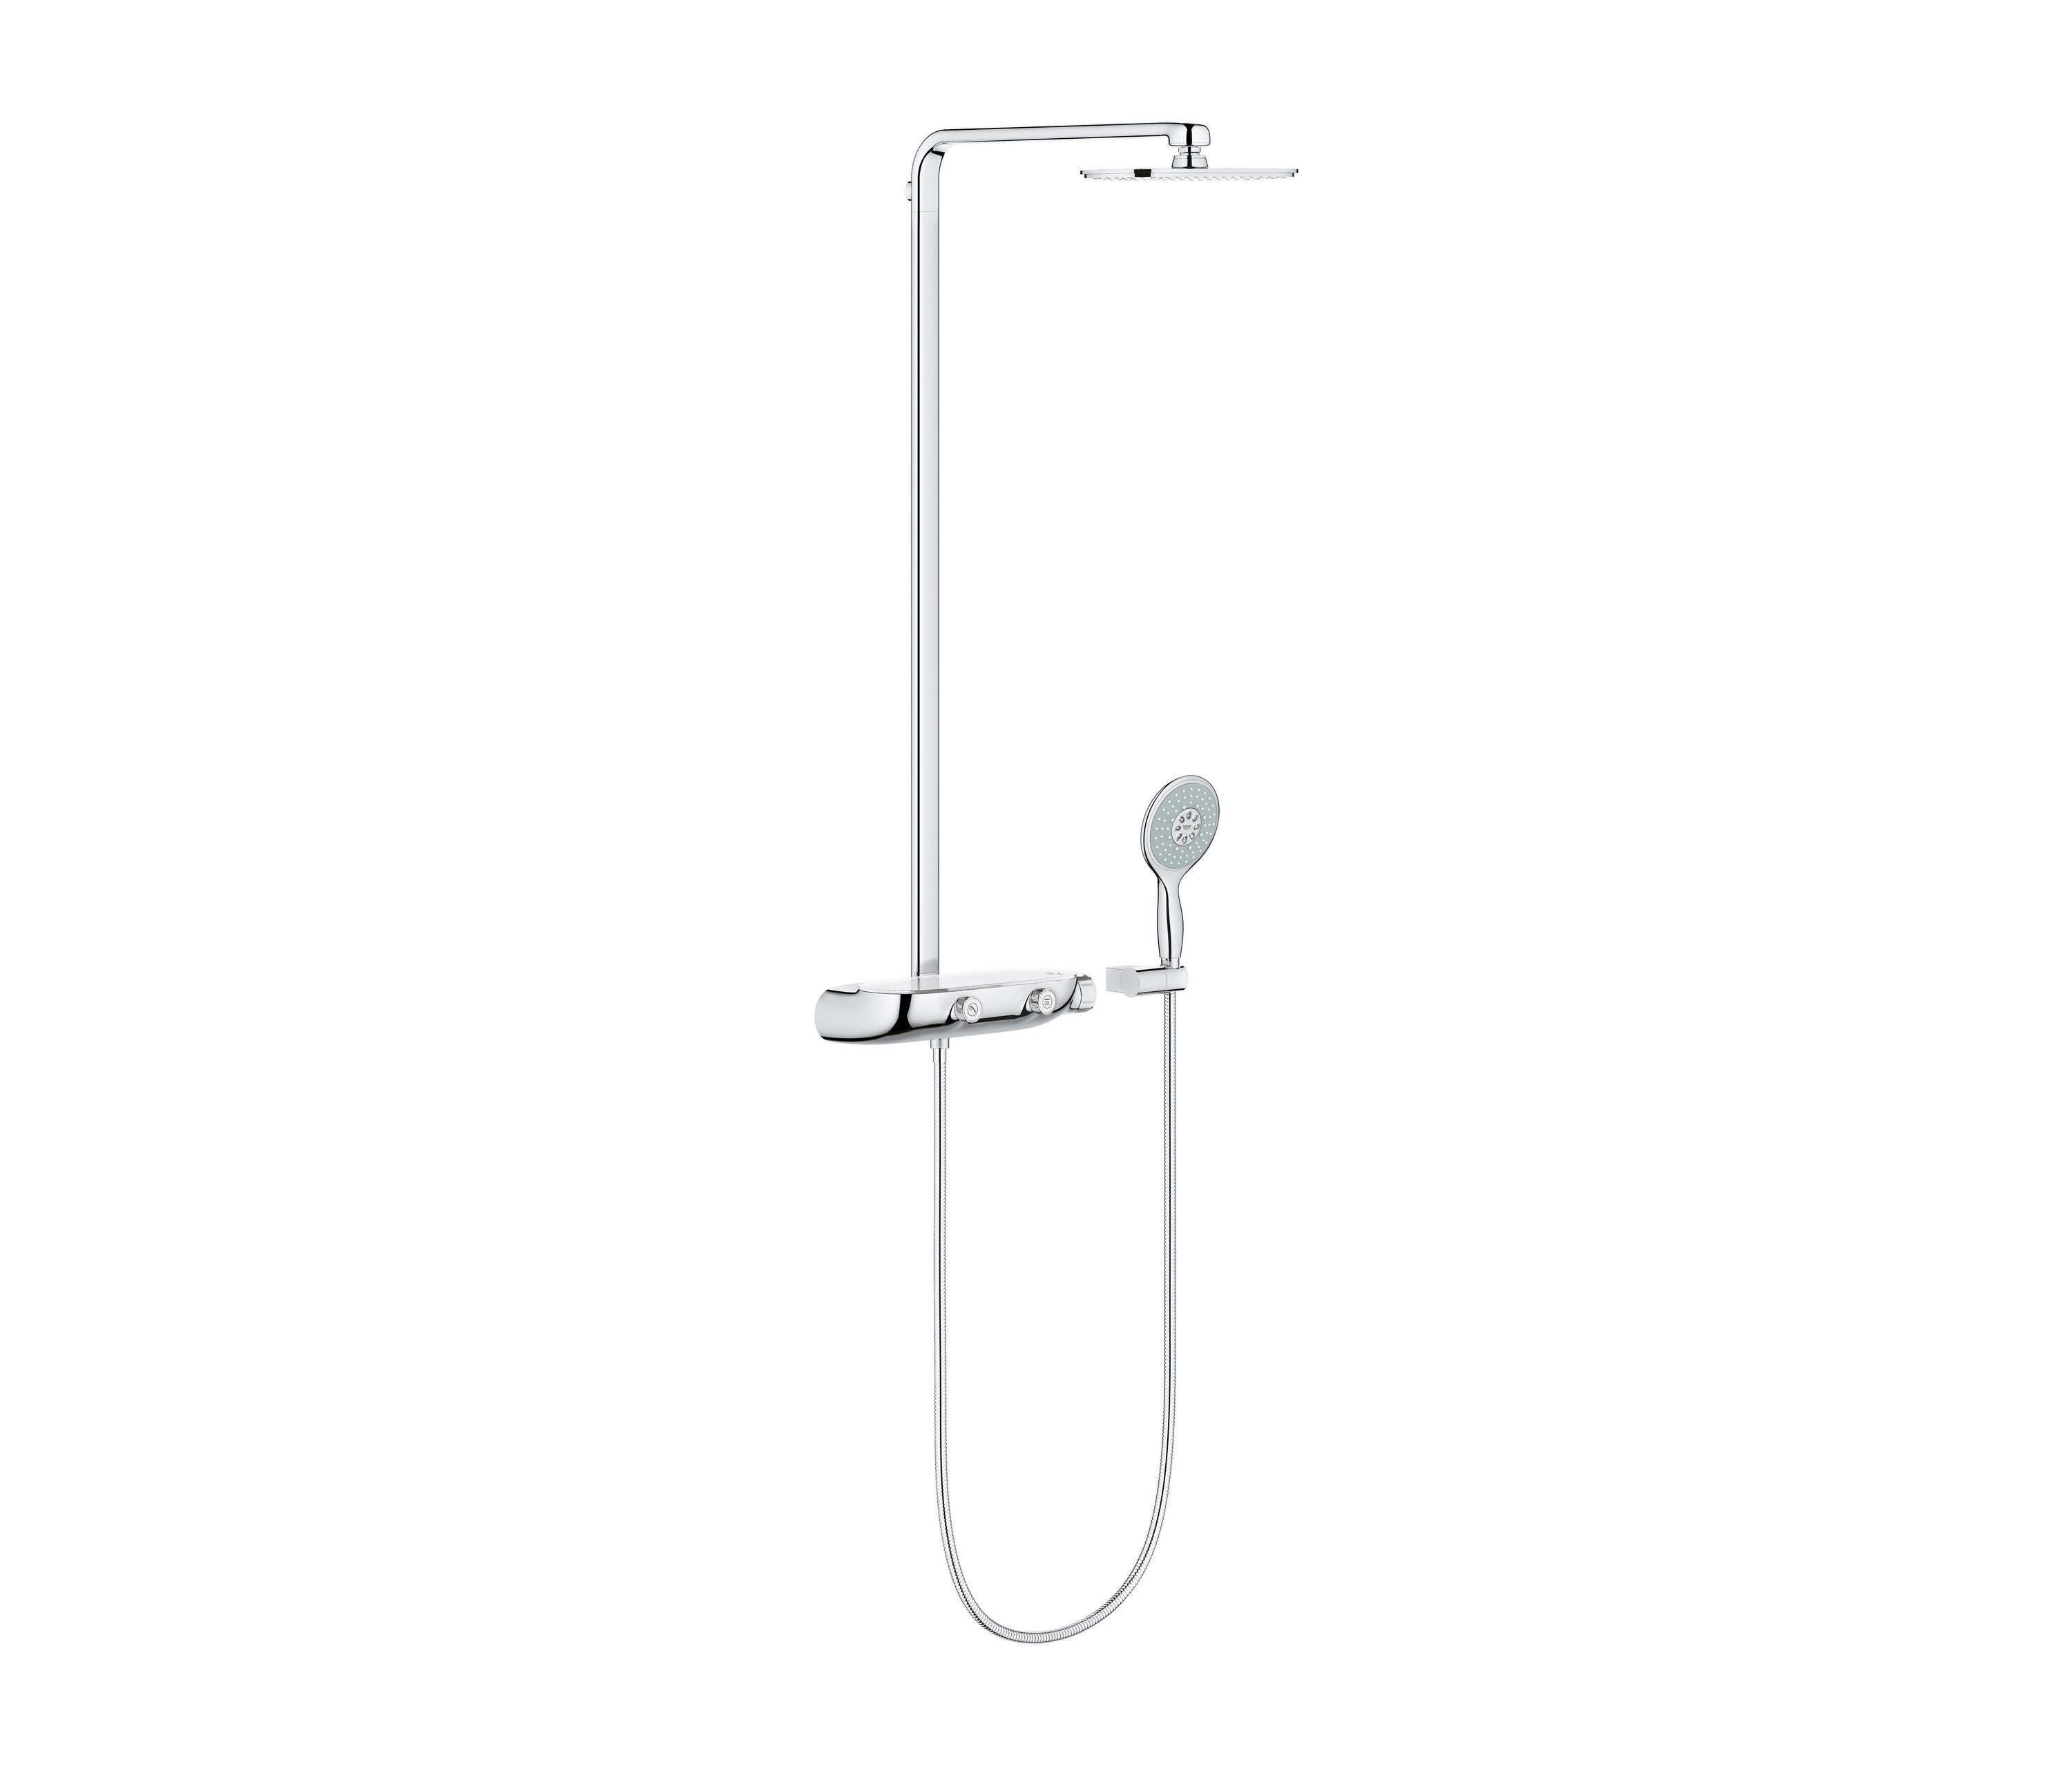 outdoorsshower screw shower hand of uncategorized system handle archaicawful setting grohe home set grohflex body tub moen images sprayers depotshower size with setups full and faucet single seats ideas ups sets cheap for